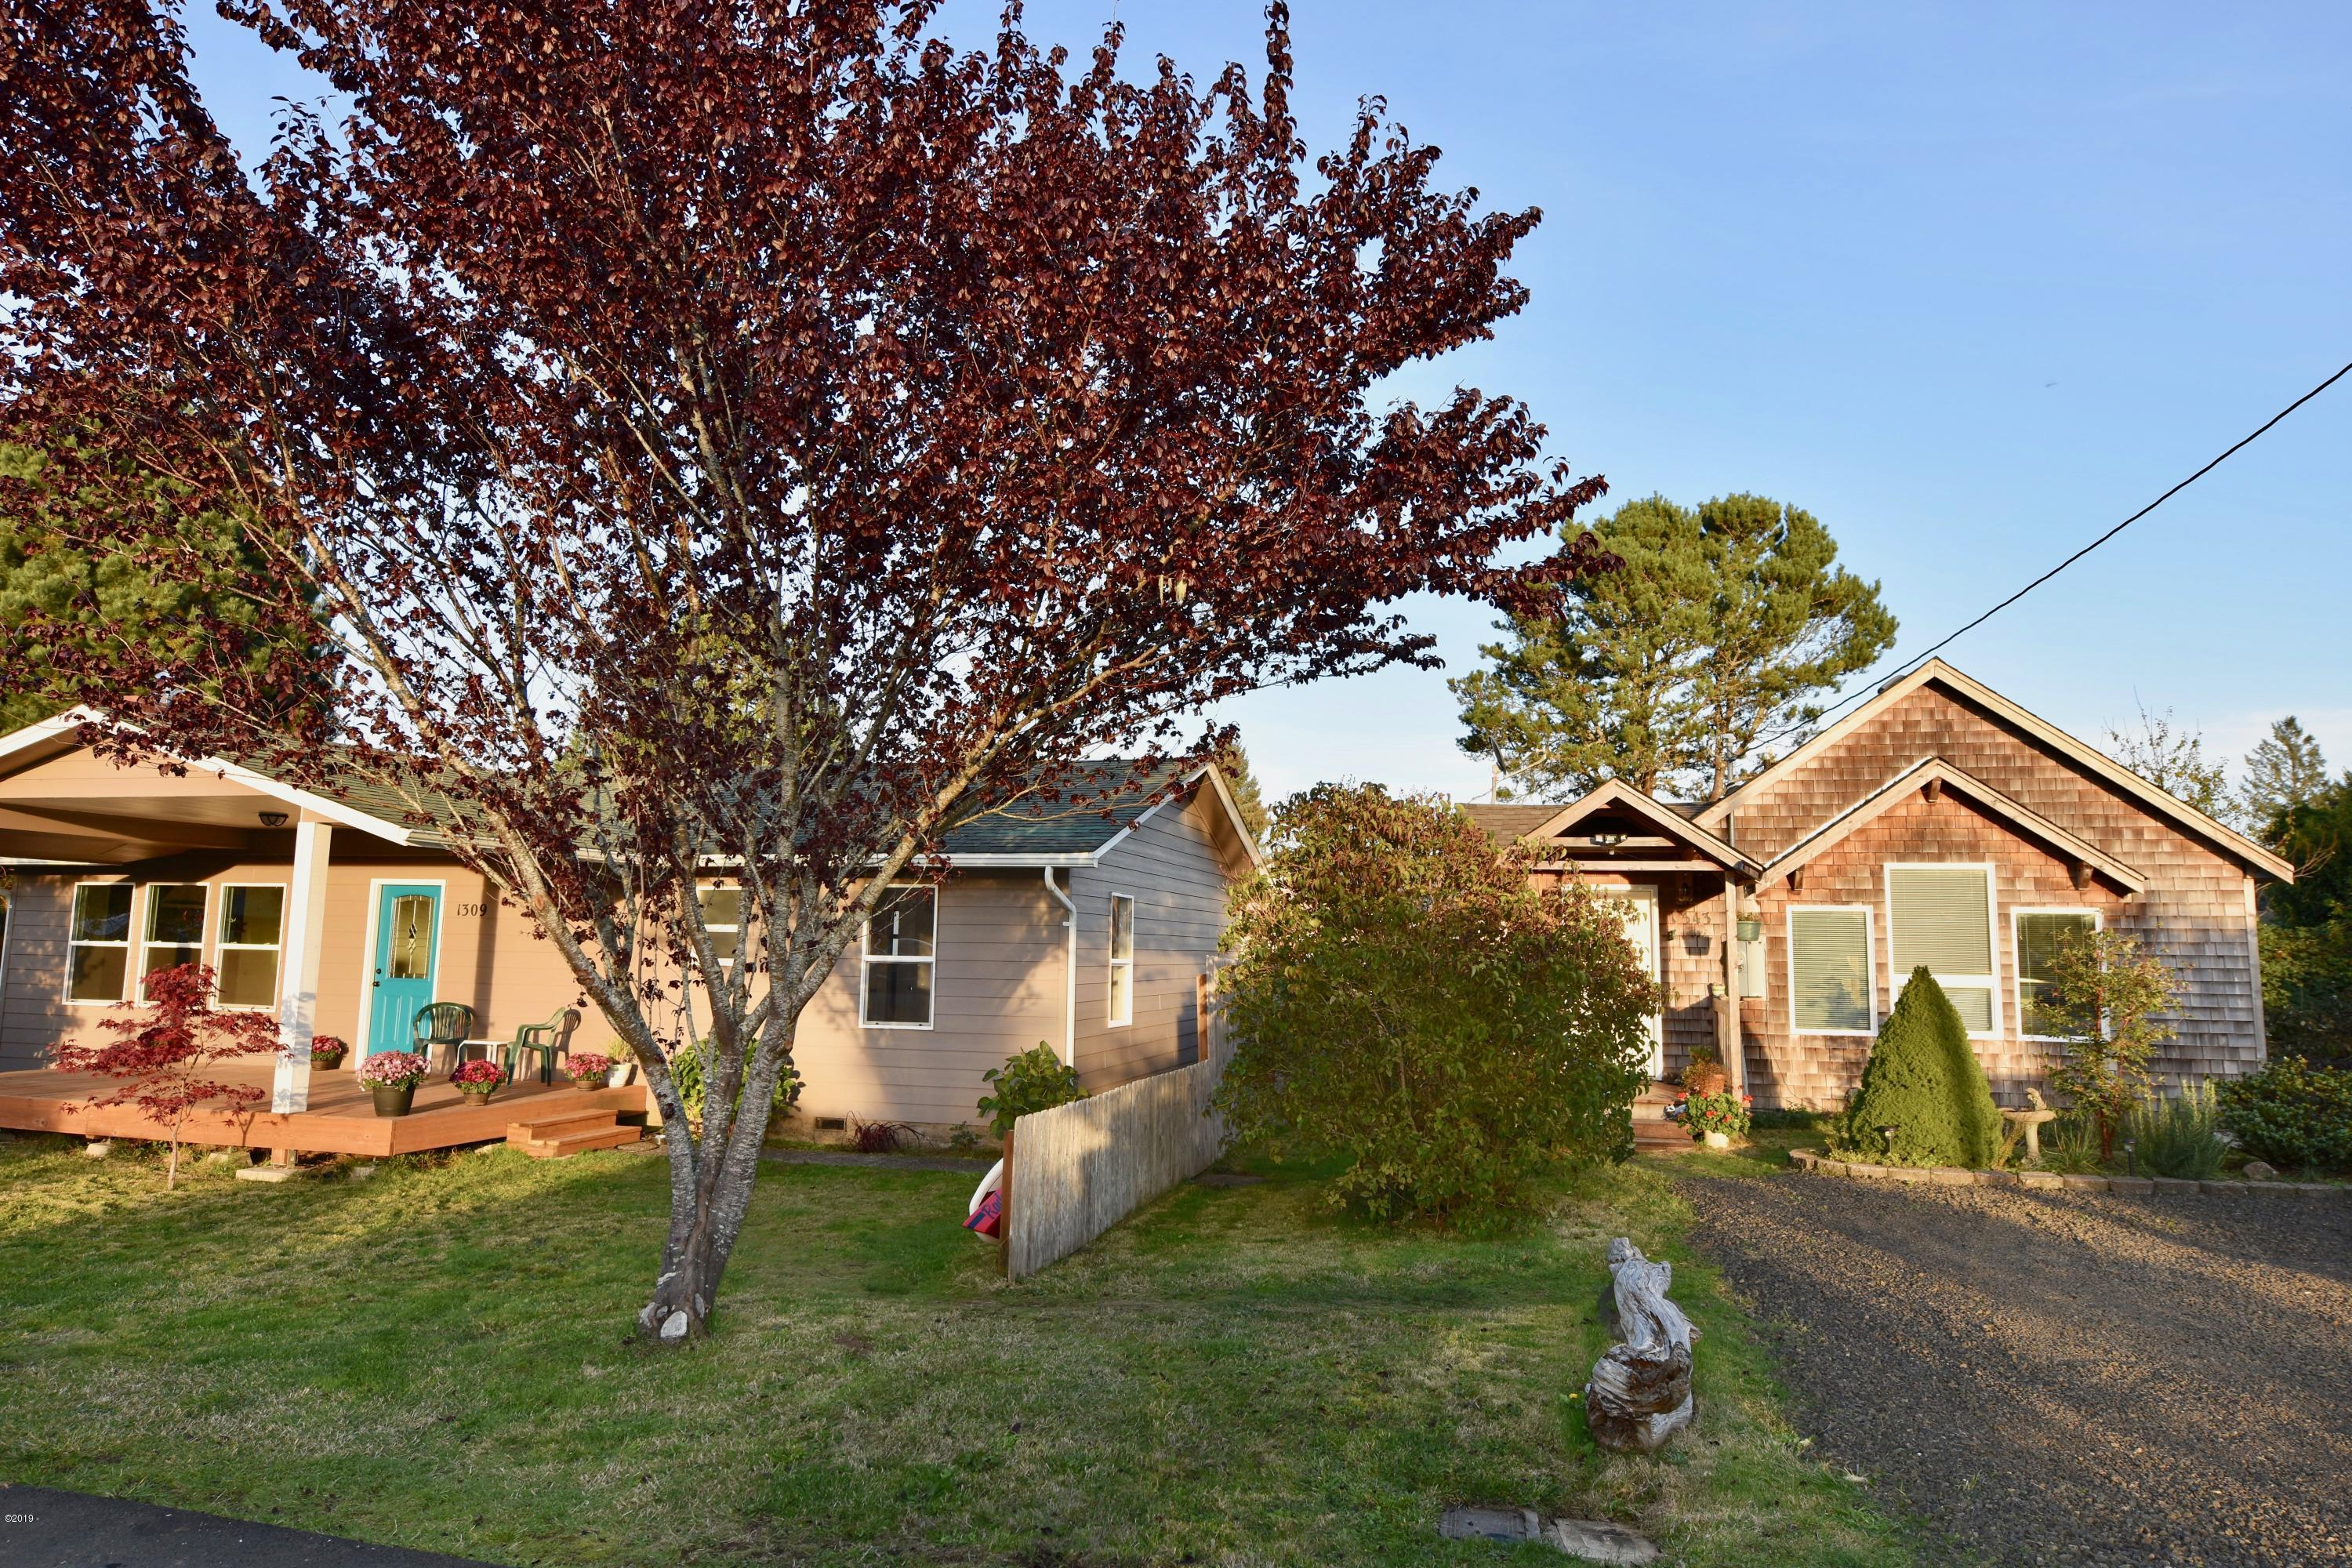 1309/1343 SE Eagle View Lane, Waldport, OR 97394 - Cottage 1343 SE Eagle View lane